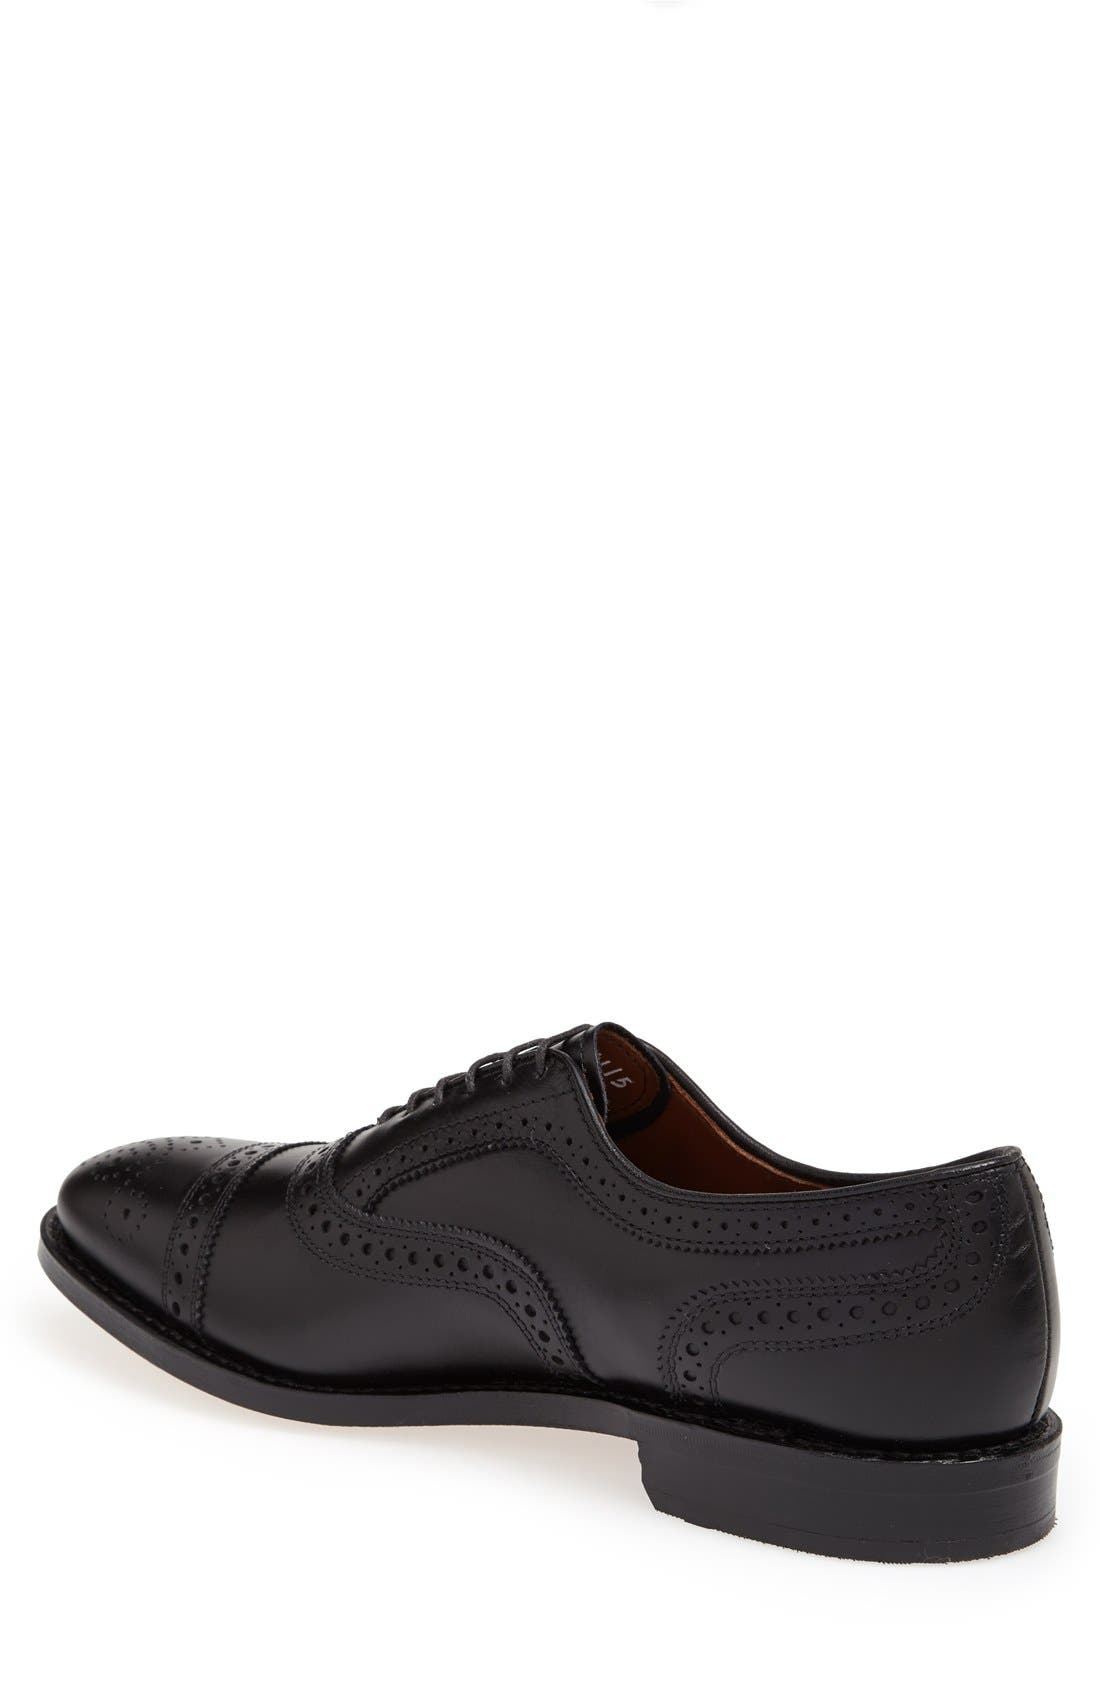 Alternate Image 2  - Allen Edmonds 'Strand' Cap Toe Oxford (Men)